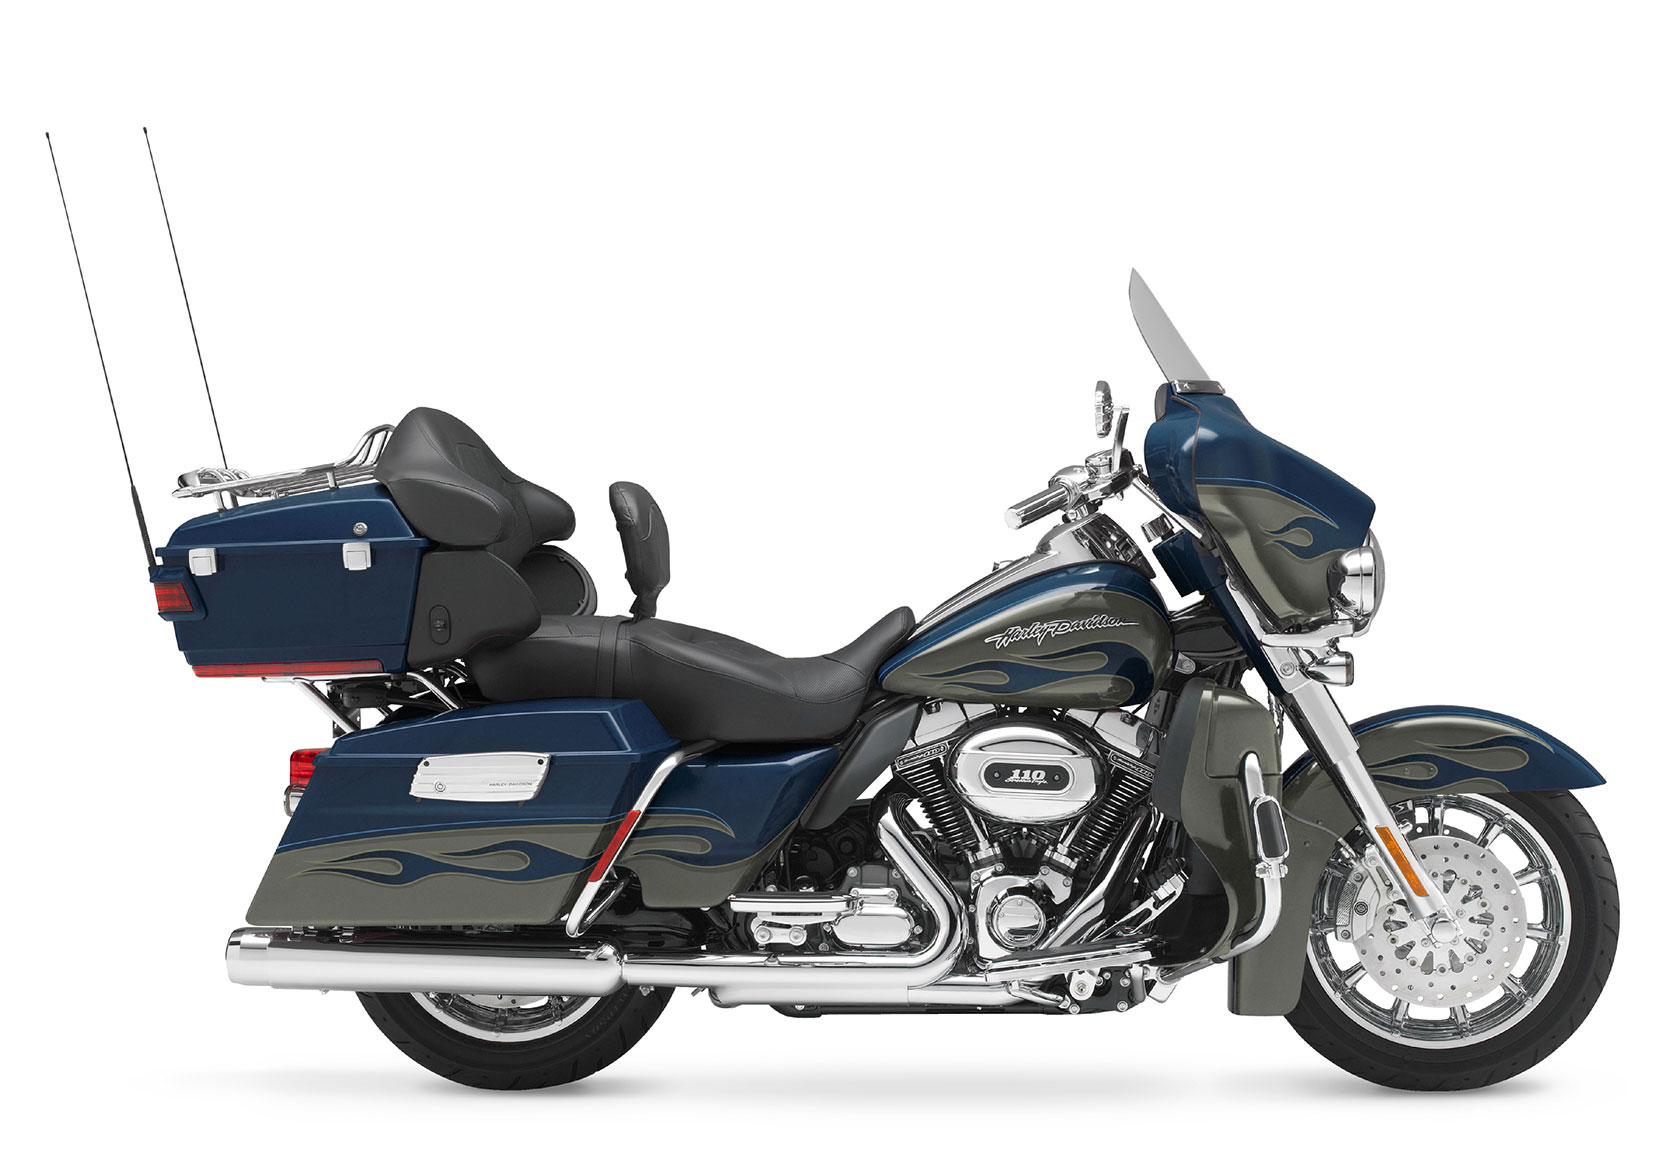 Harley Davidson Ultra Classic Specifications